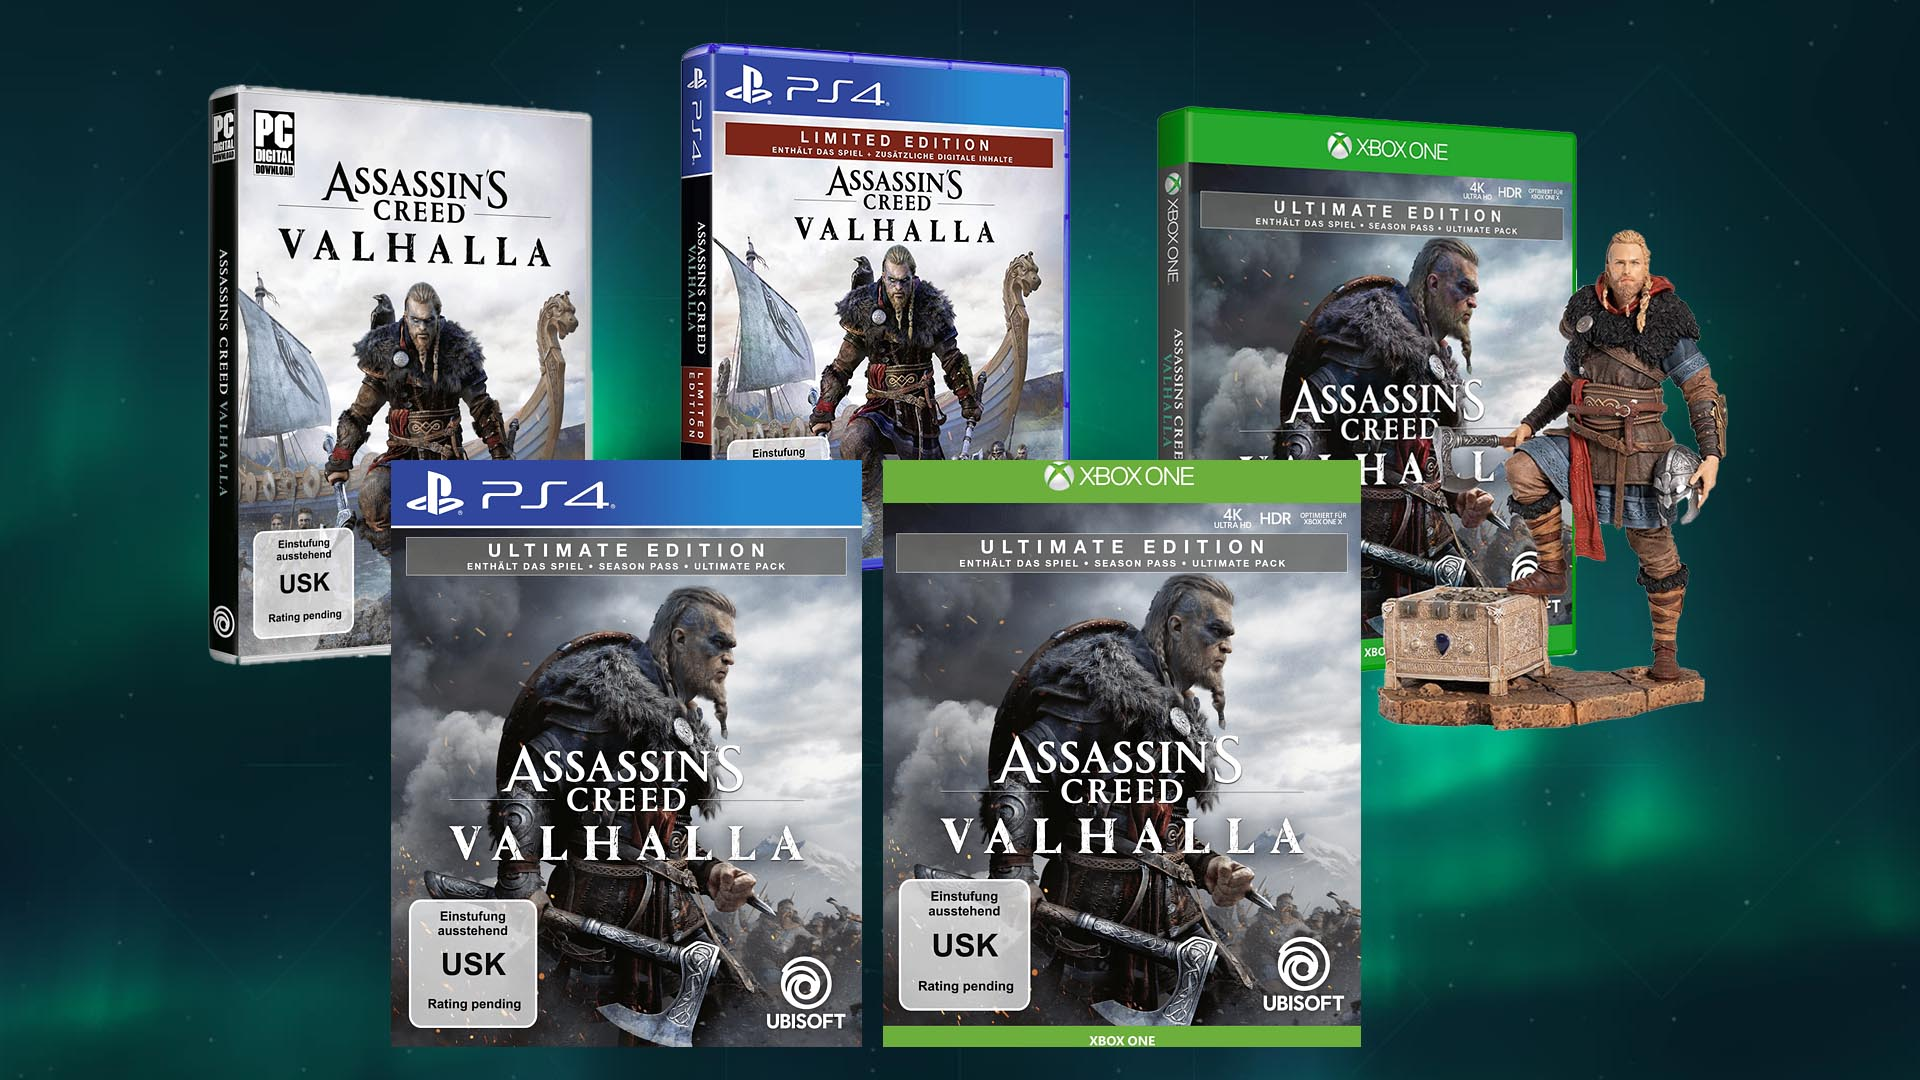 assassins creed valhalla ps4 ultimate edition